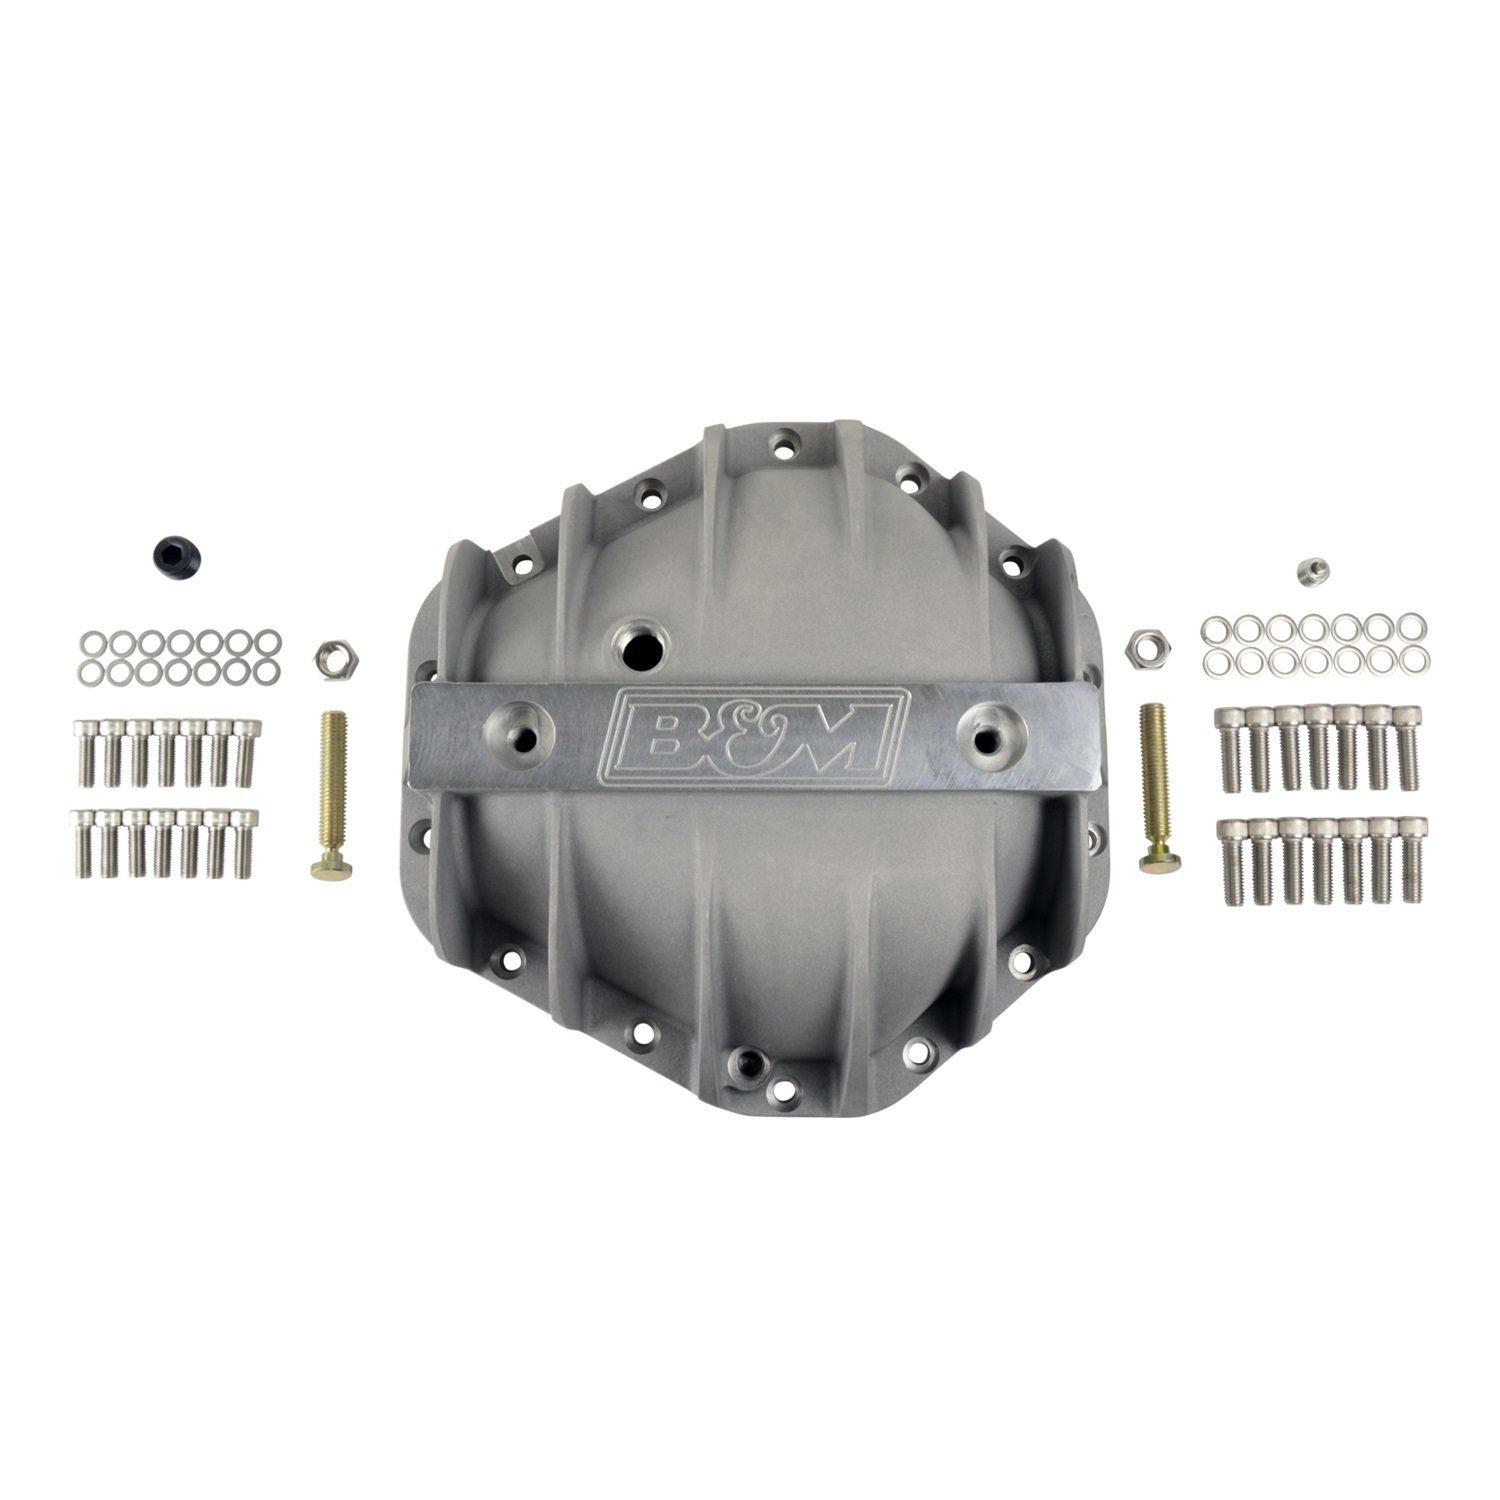 B&M (70501) 10.5'' Cast Aluminum 14-Bolt Rear End Differential Cover